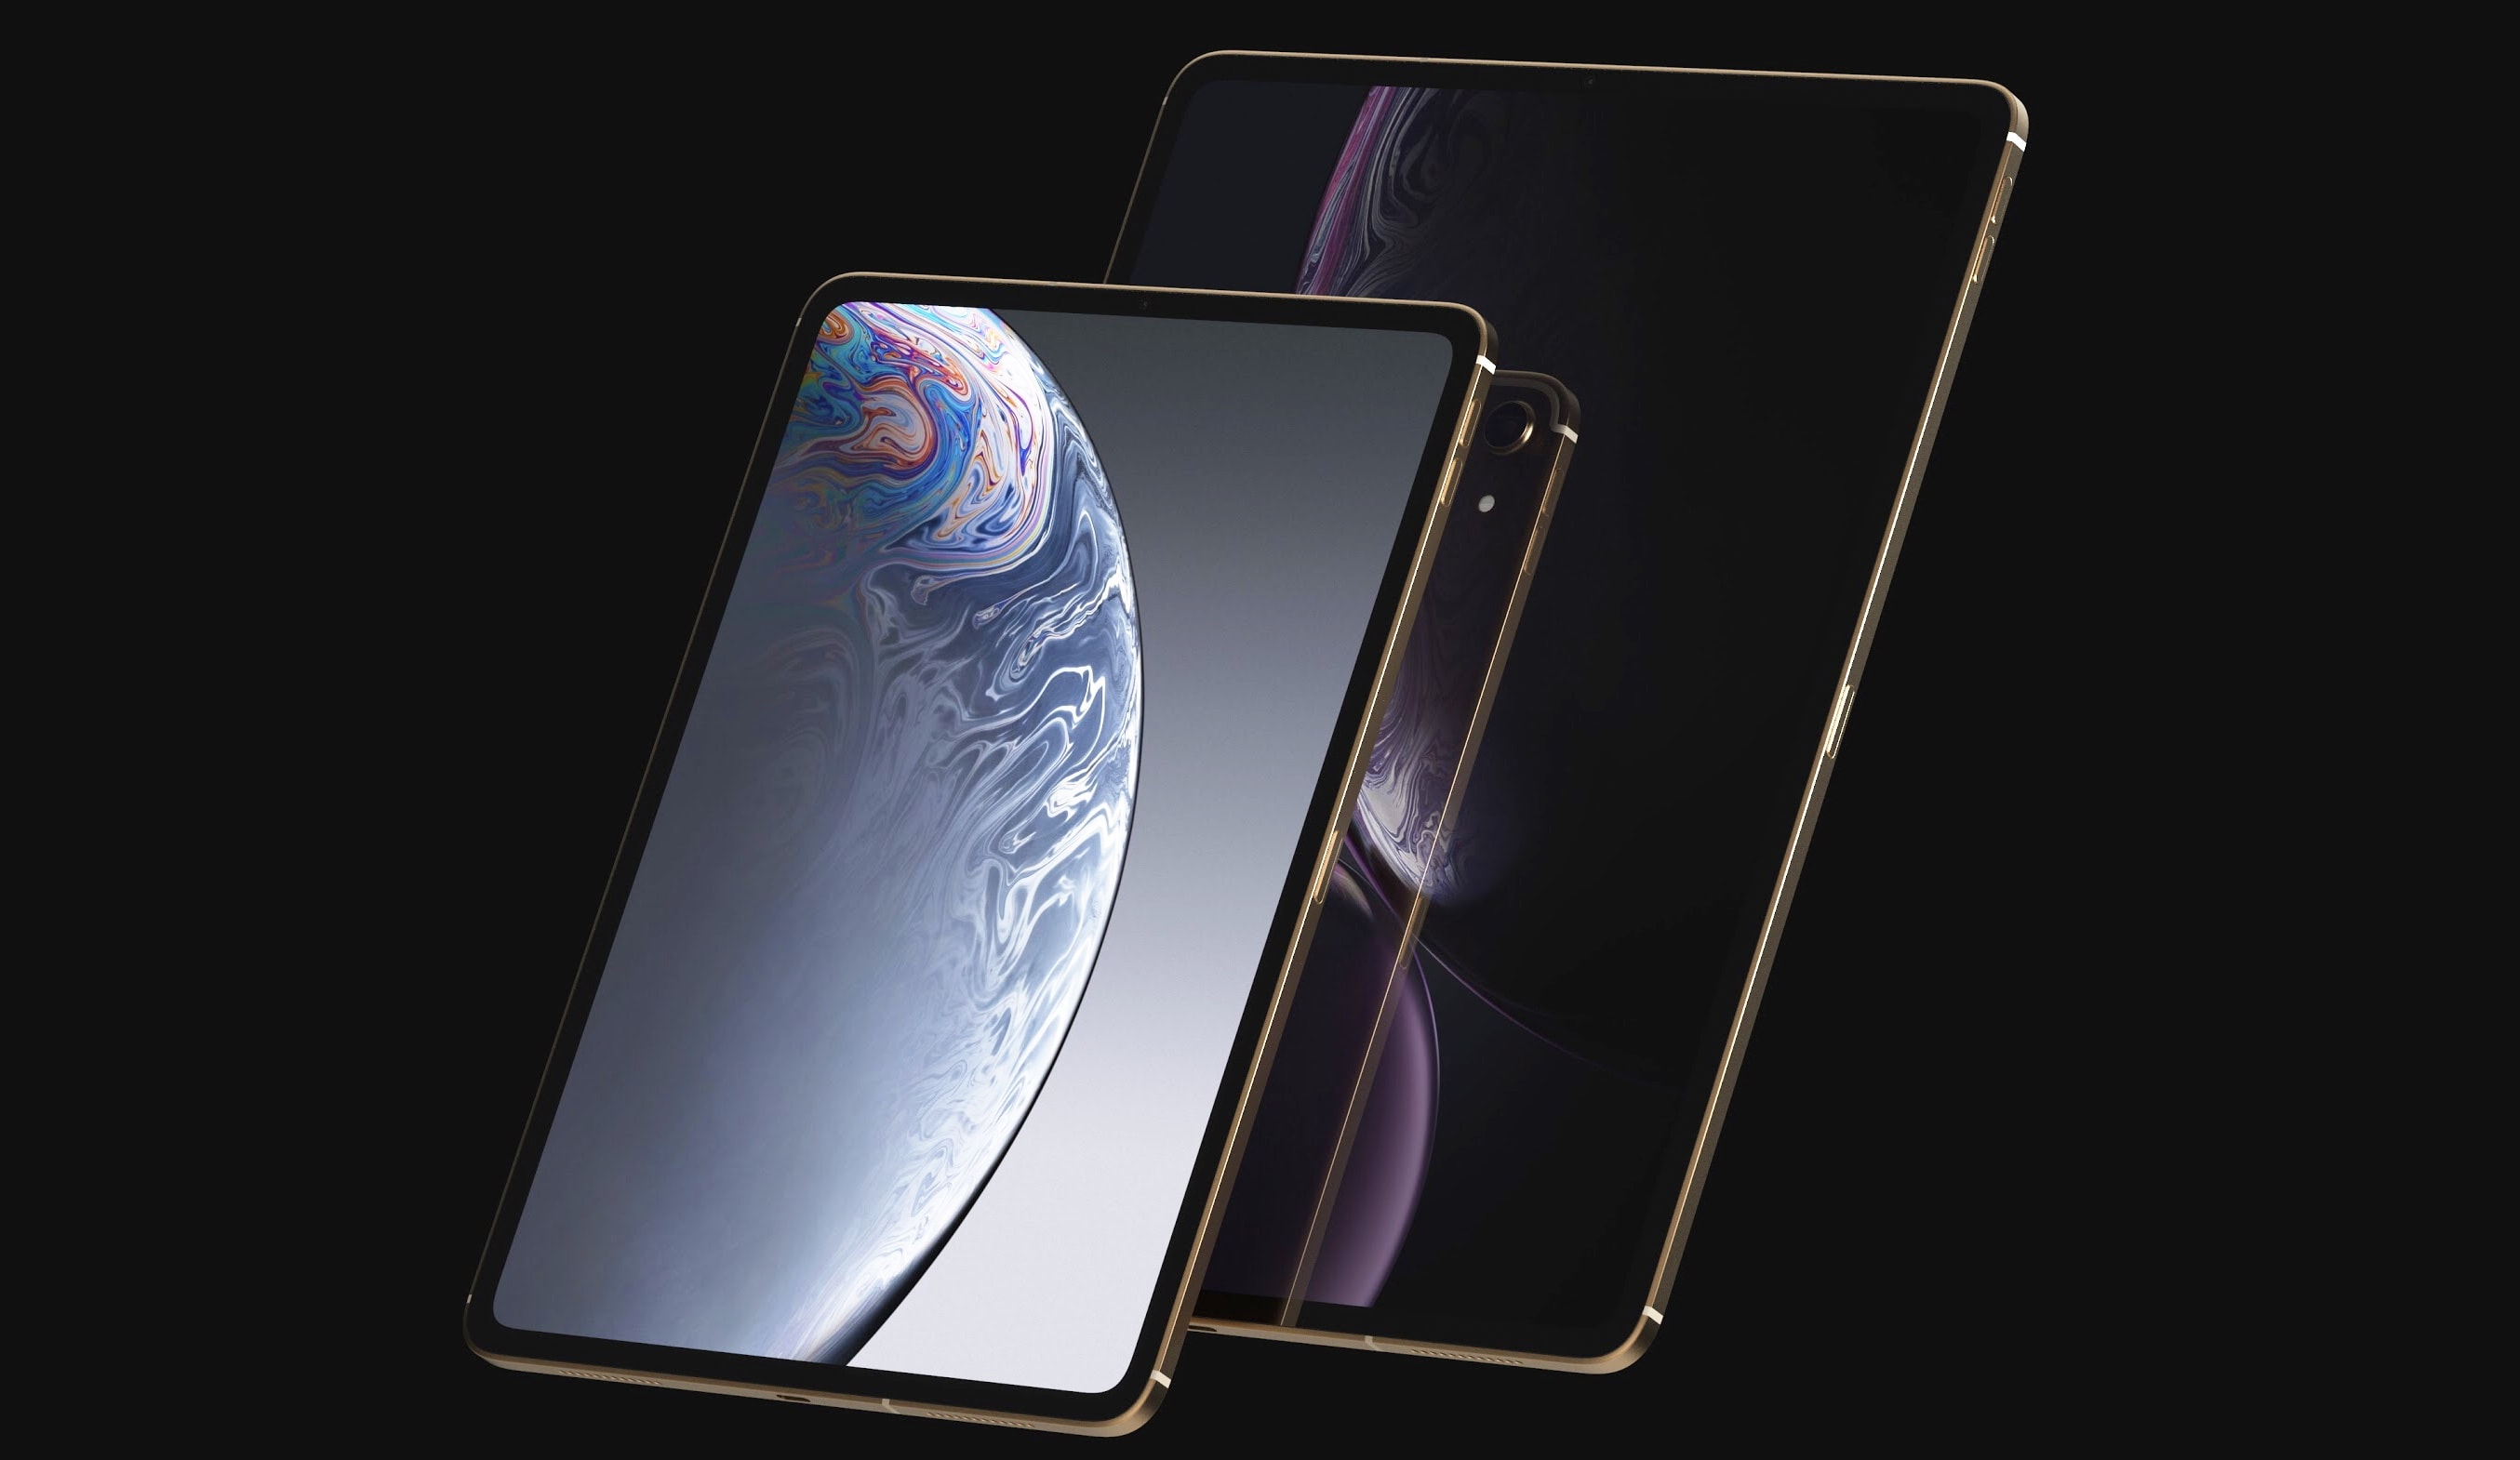 The 2018 iPad Pro has supposedly been redesigned without without the Home button. And without a Lightning port too.